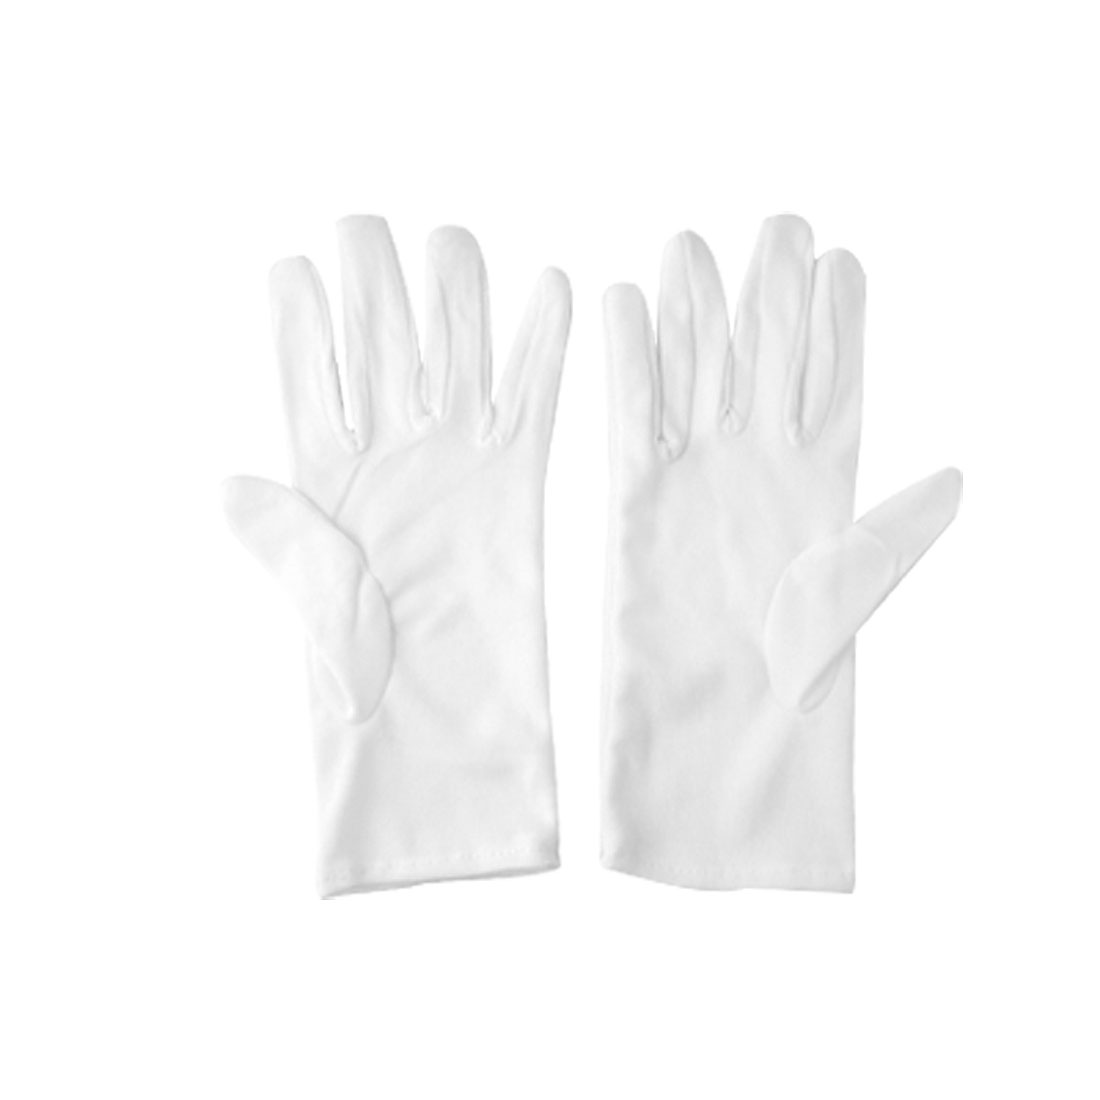 Ladies White Cotton Thin Full Fingers Work Driving Gloves 2 Pairs